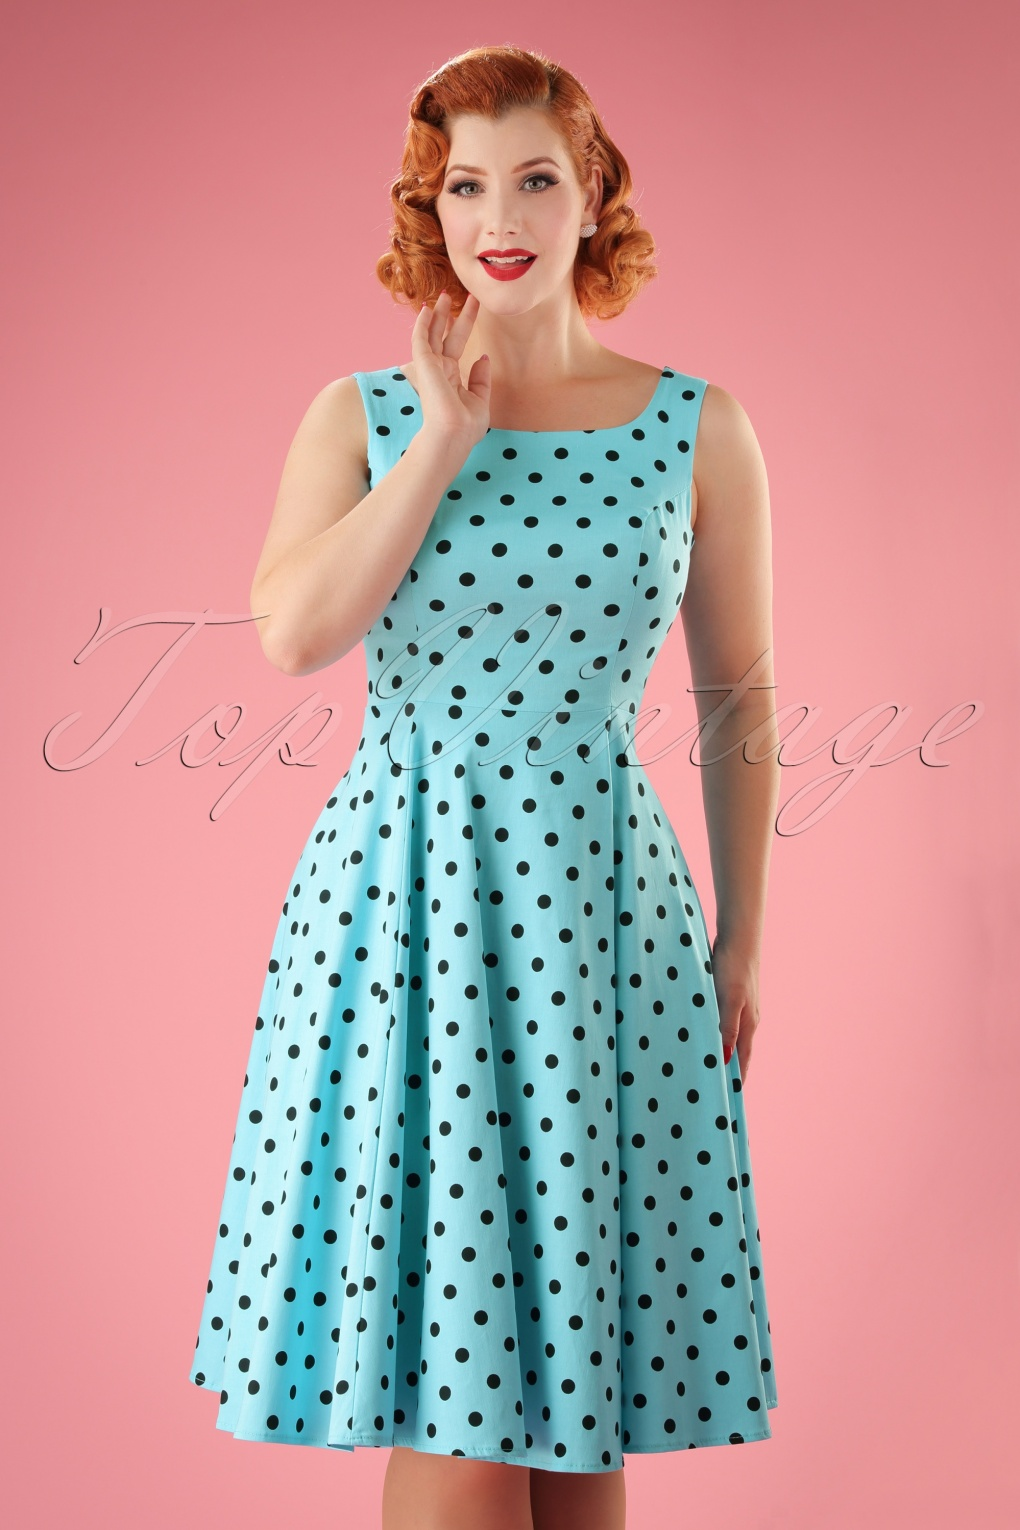 1940s Pinup Dresses for Sale 50s Rhiannon Polkadot Swing Dress in Aqua Blue £31.58 AT vintagedancer.com